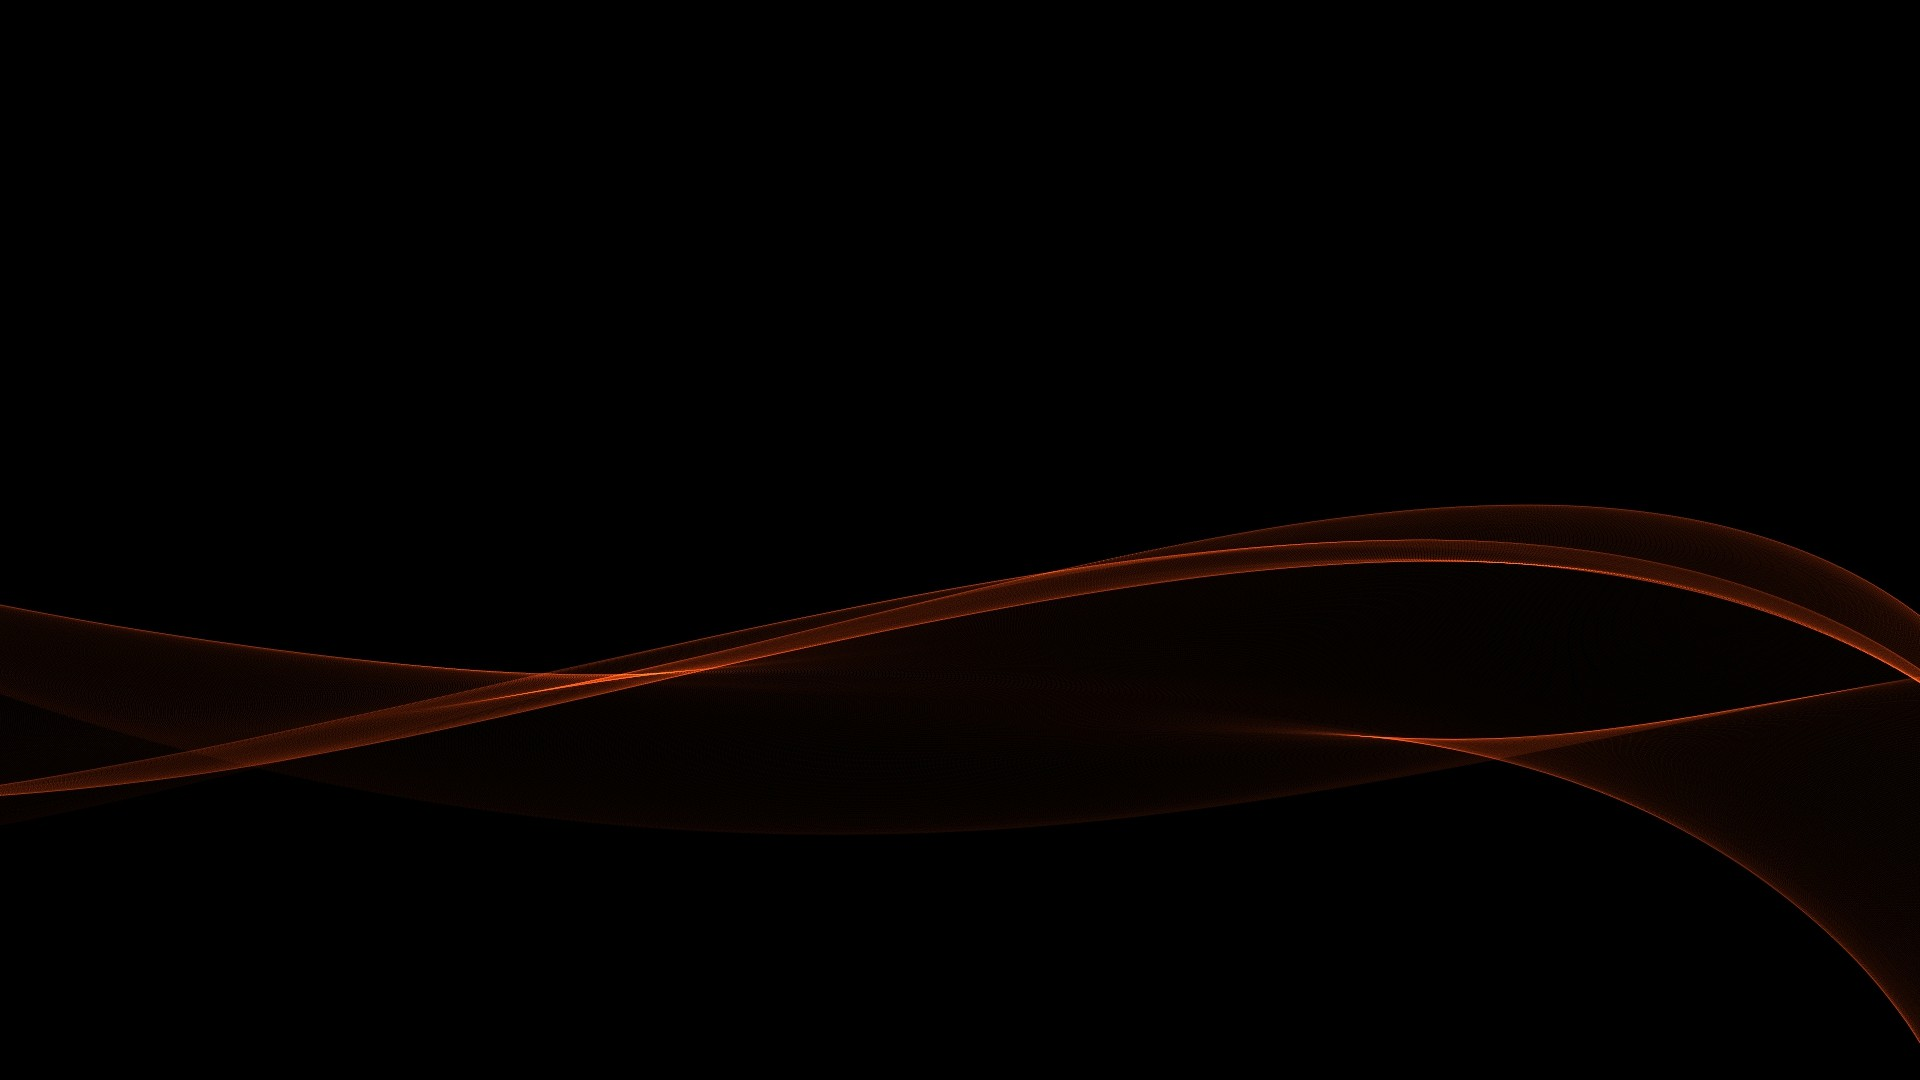 Abstract Black Minimalistic Red Waves Gradient HD Wallpapers   1764652 1920x1080